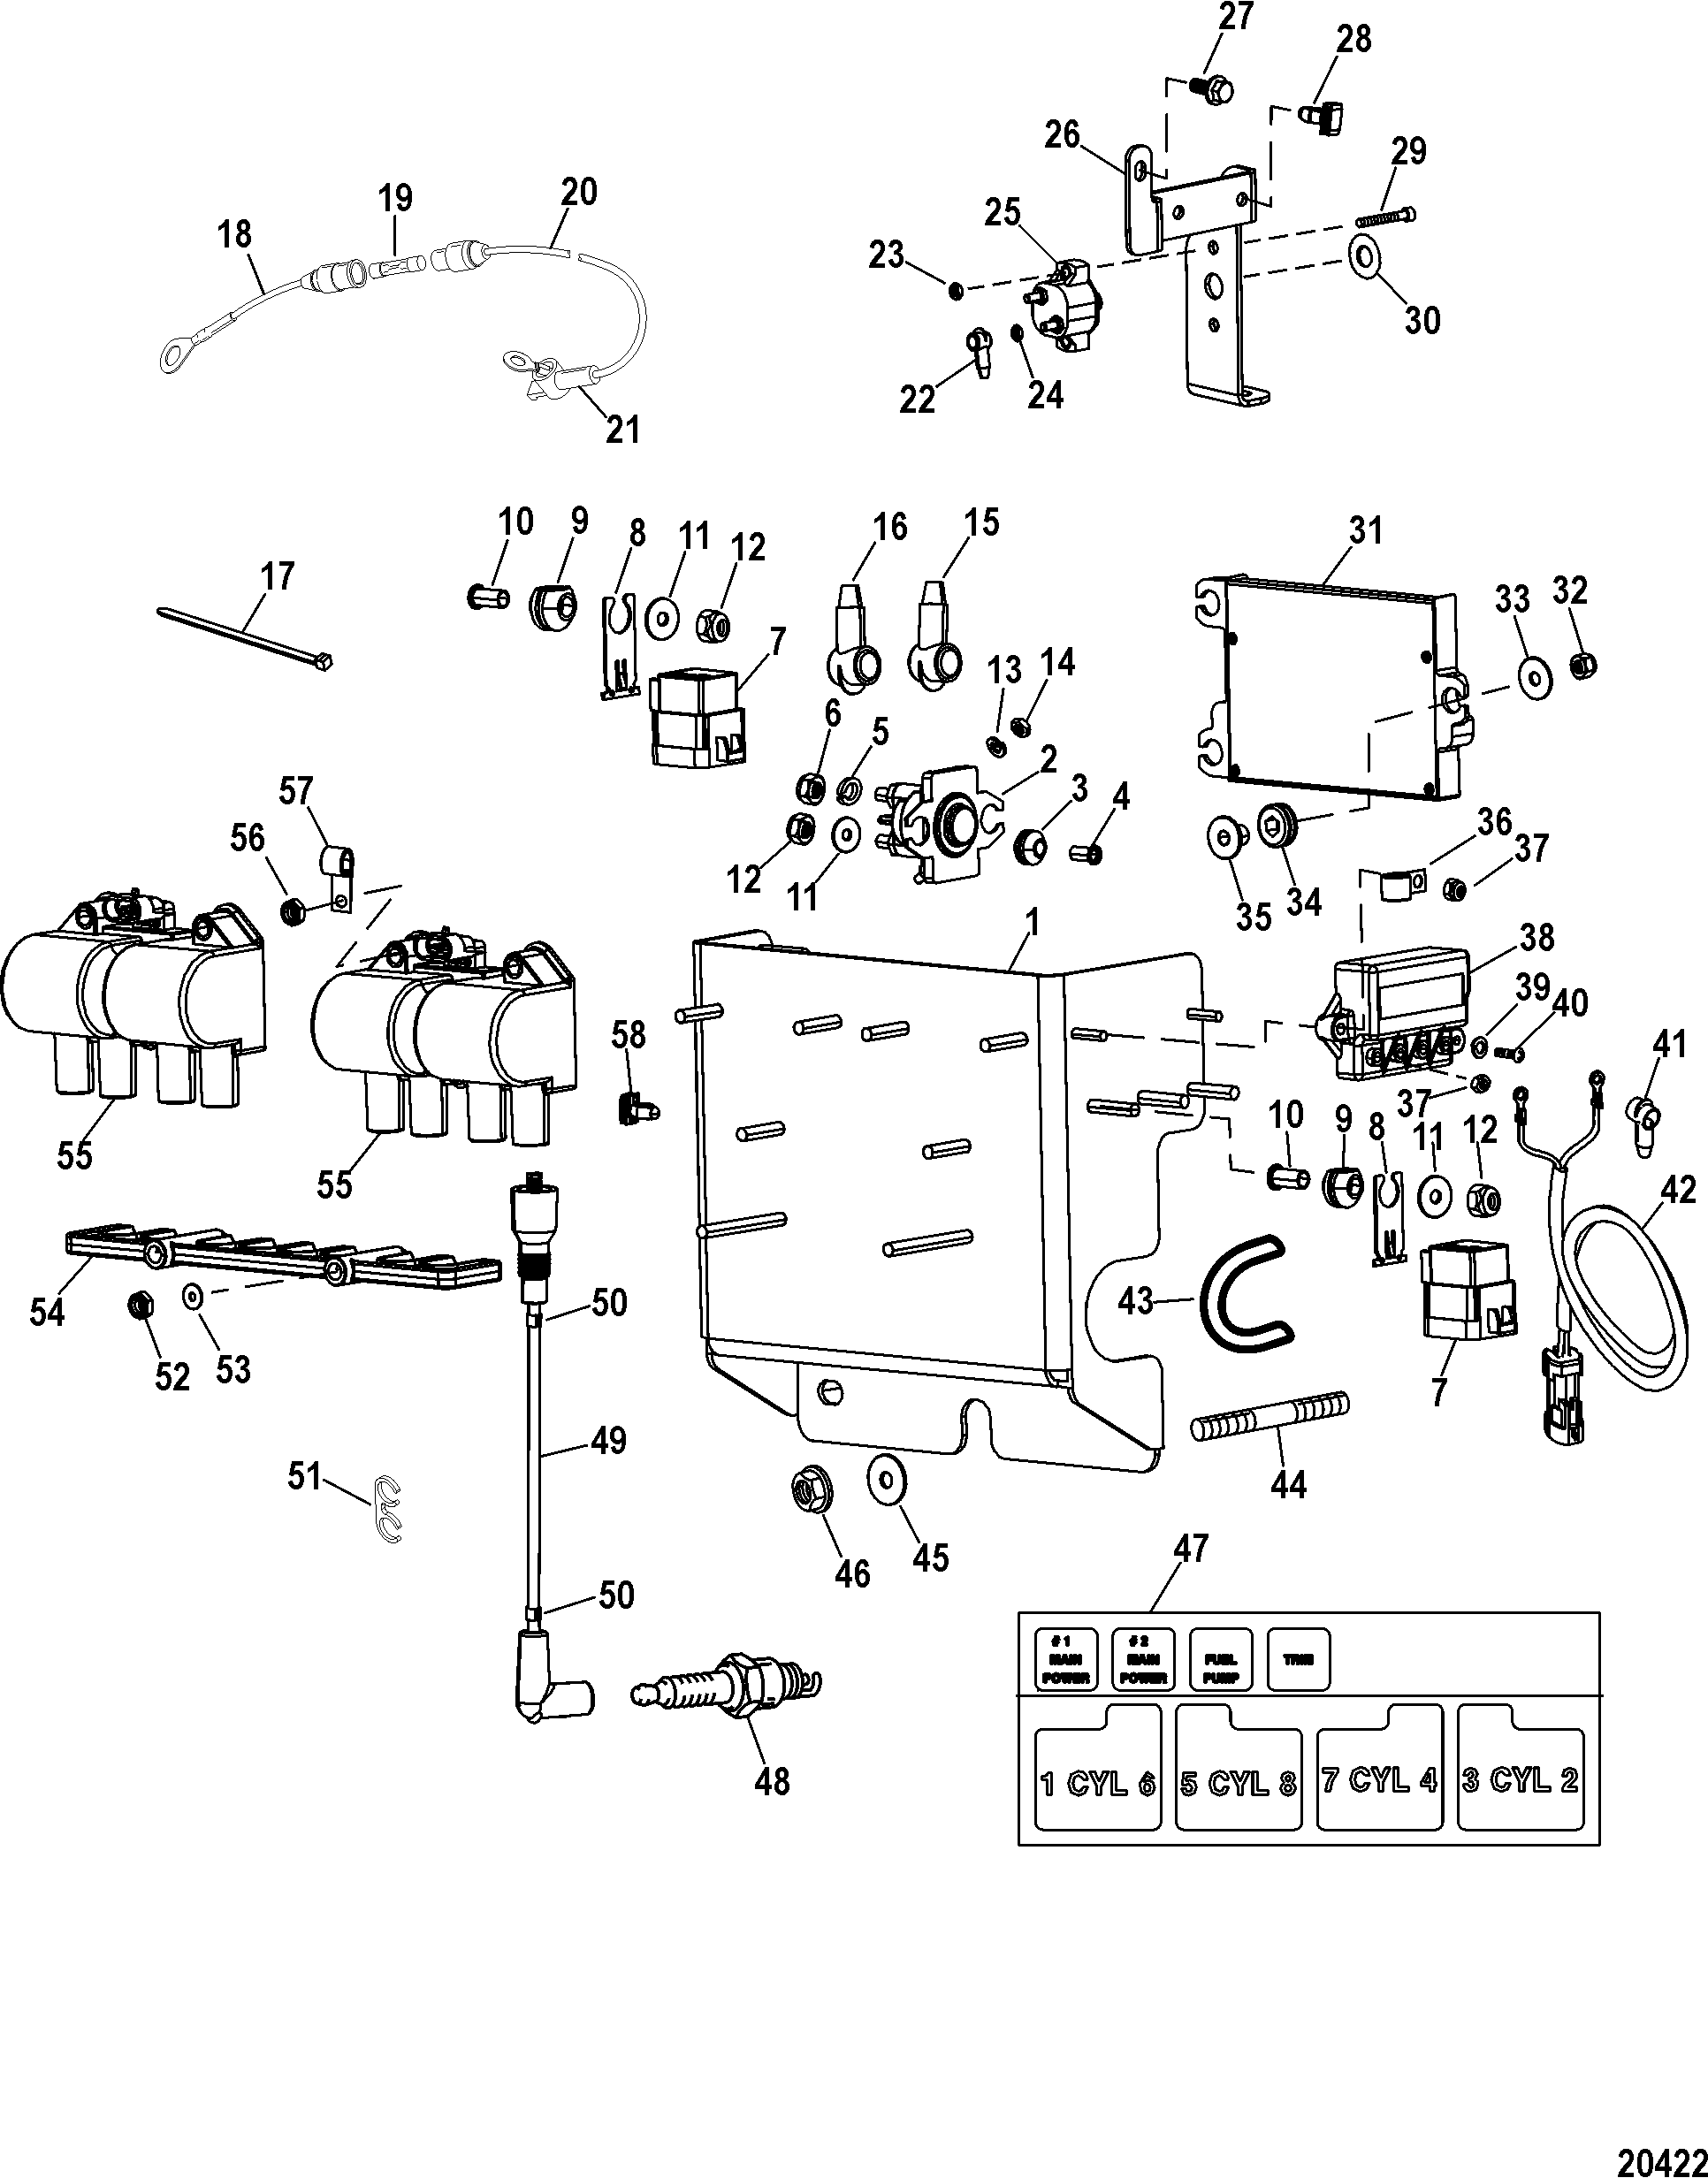 Mallory Alternator Wiring Diagram | Wiring Diagram Database on